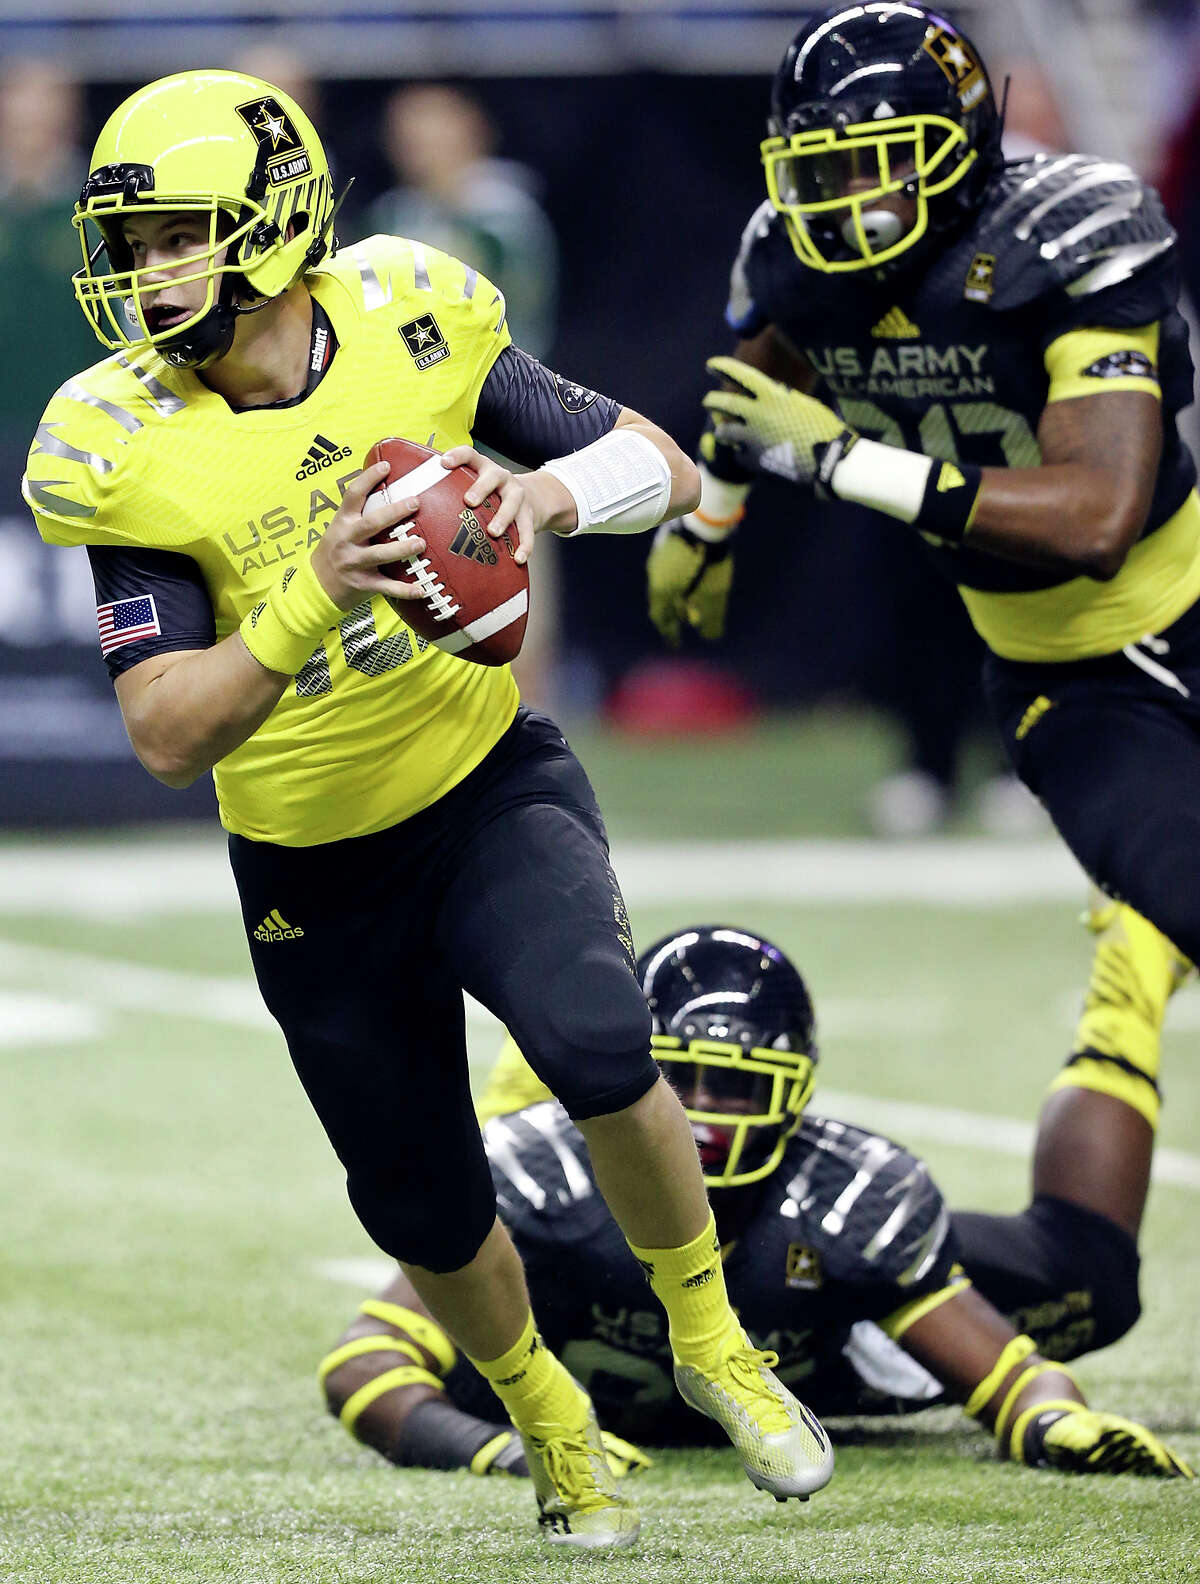 West's Kyle Allen looks for running room around East defenders during first half action of the U.S. Army All-American Bowl Saturday Jan. 4, 2014 at the Alamodome.